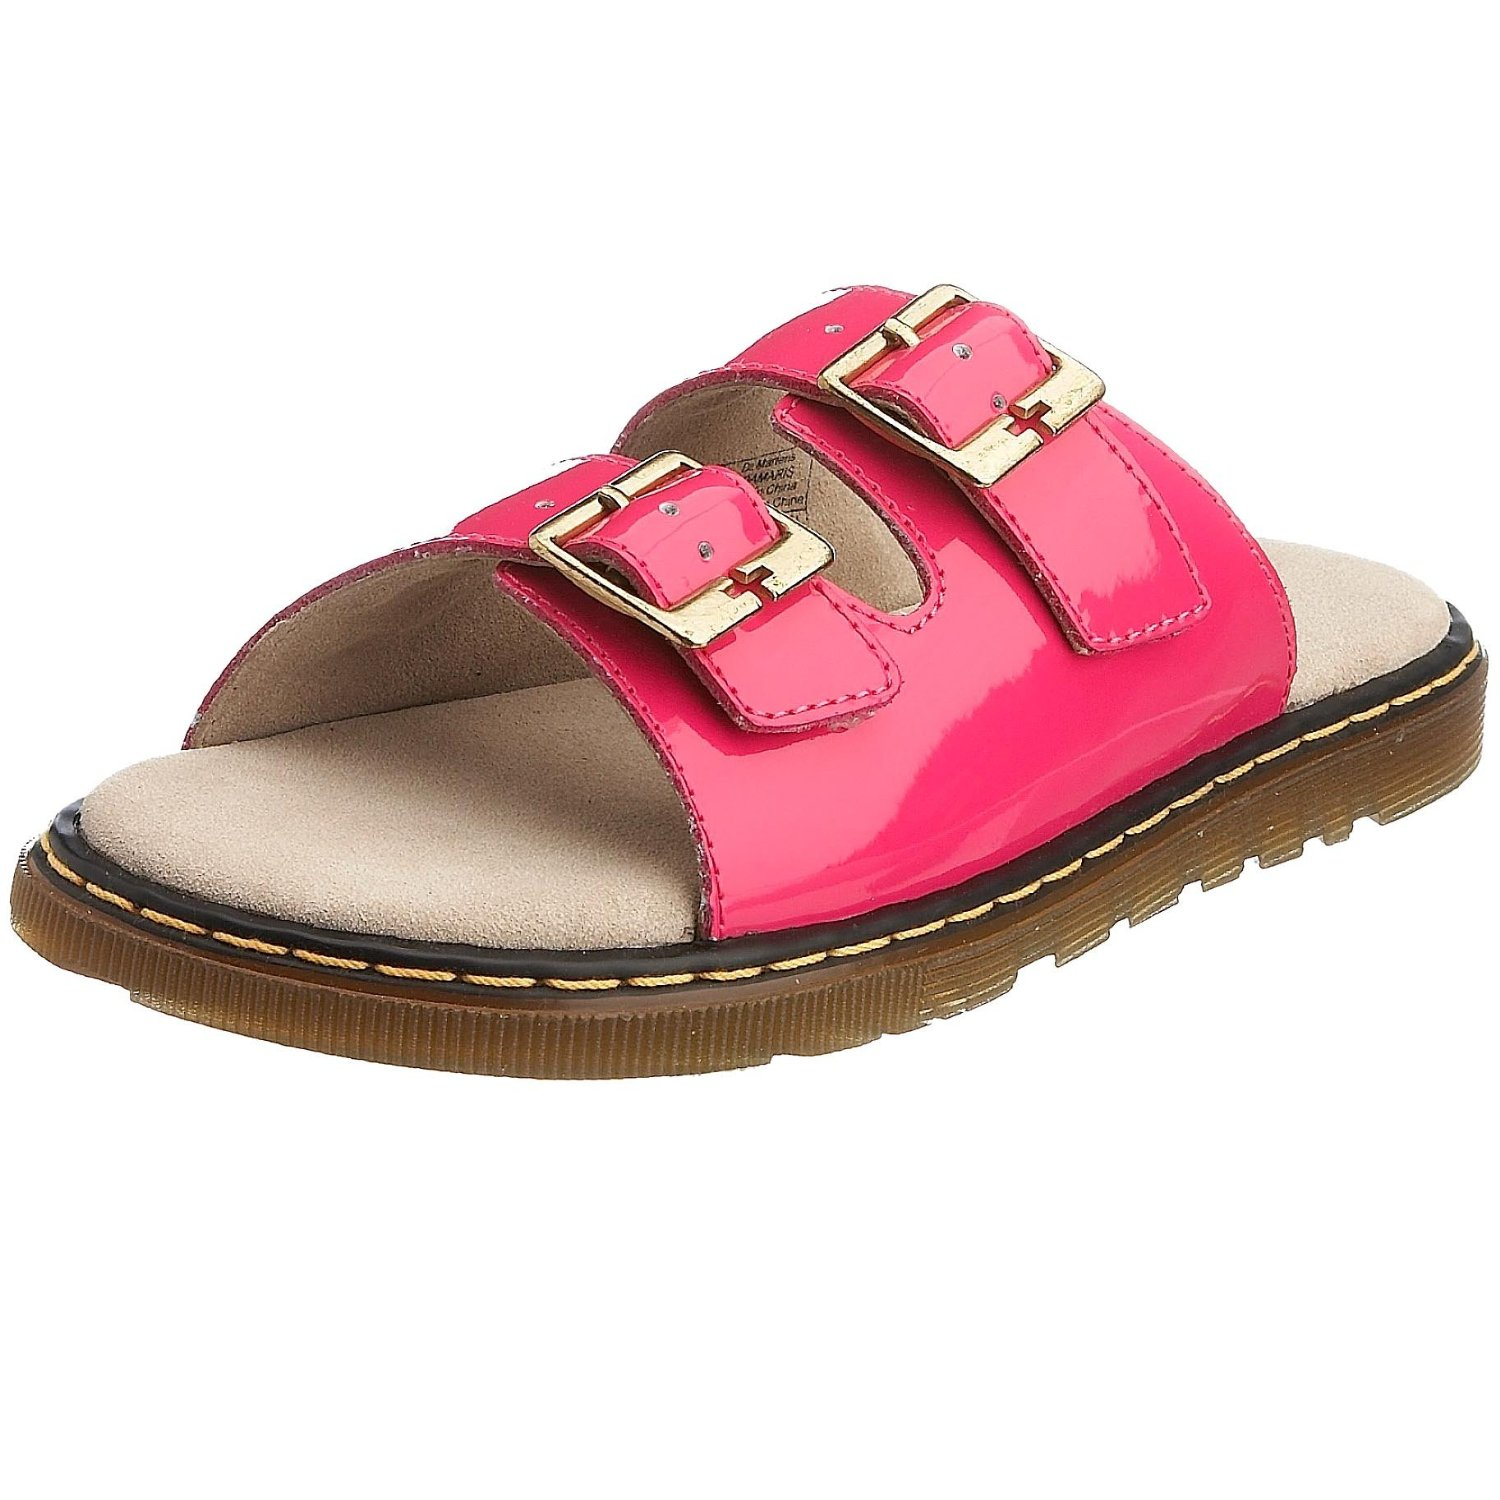 Two Strap Slide Sandals Womens